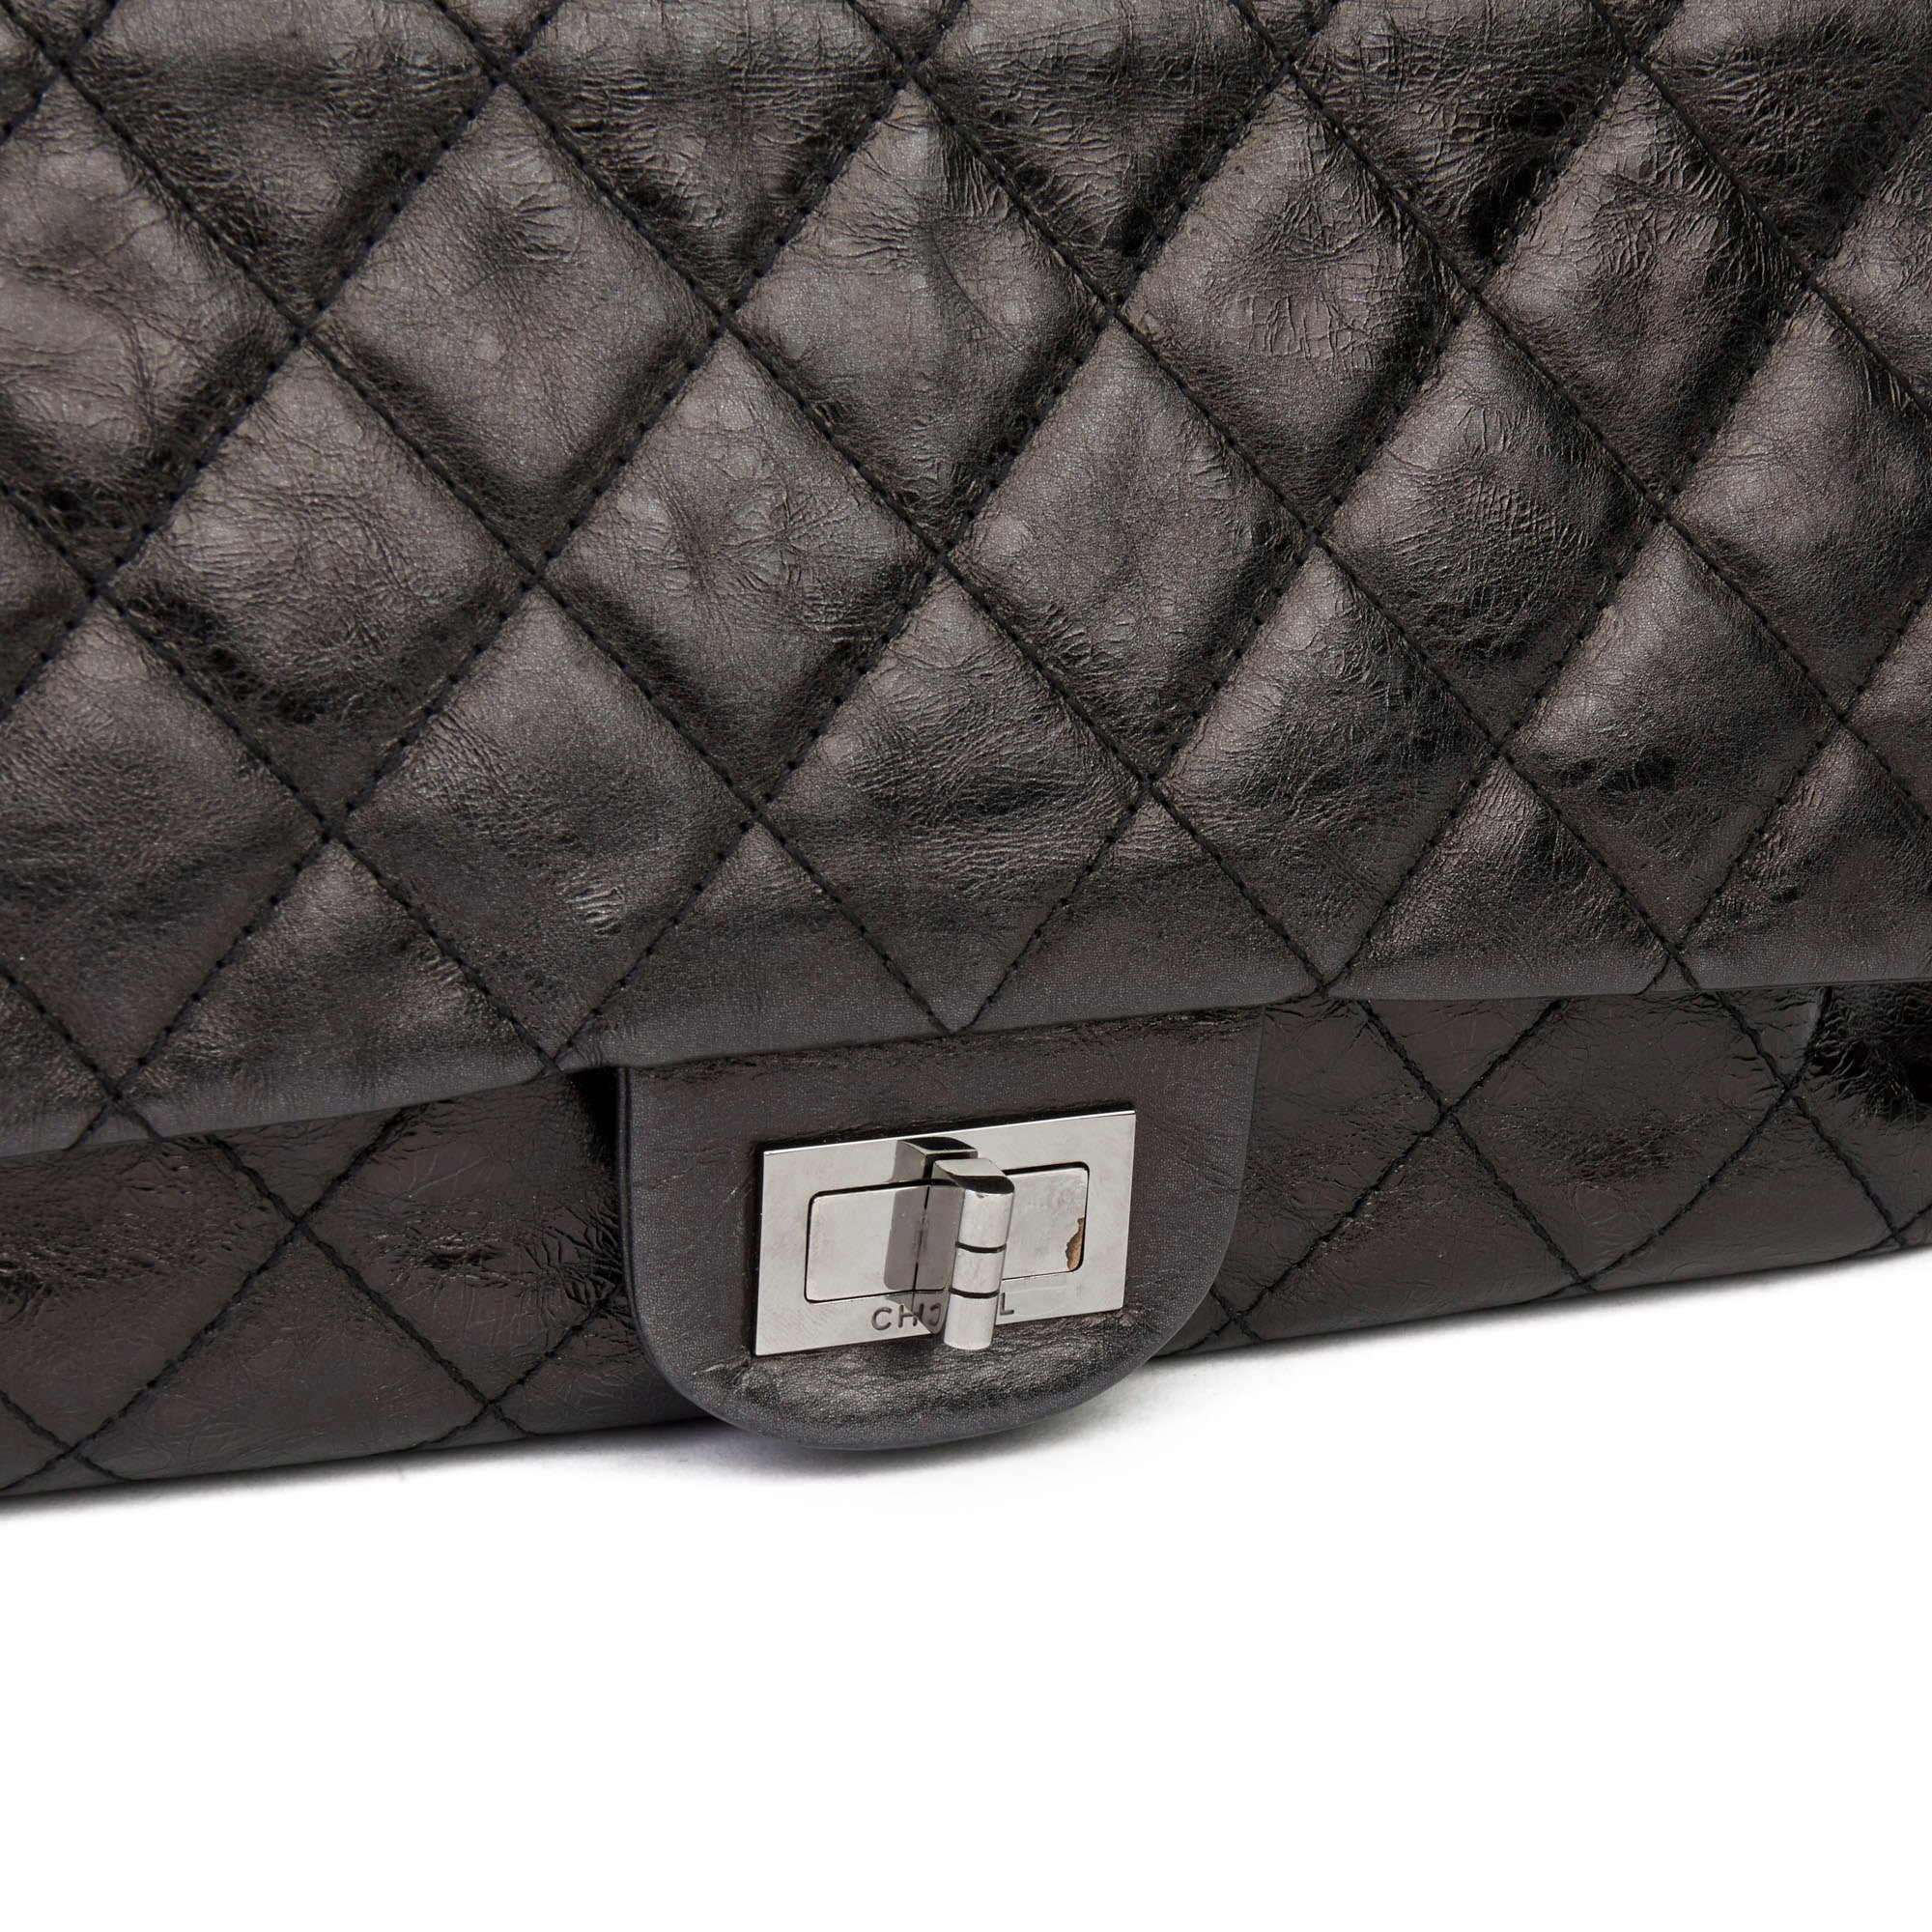 Chanel Black Quilted Metallic Aged Calfskin Leather 2.55 Reissue 227 Double Flap Bag